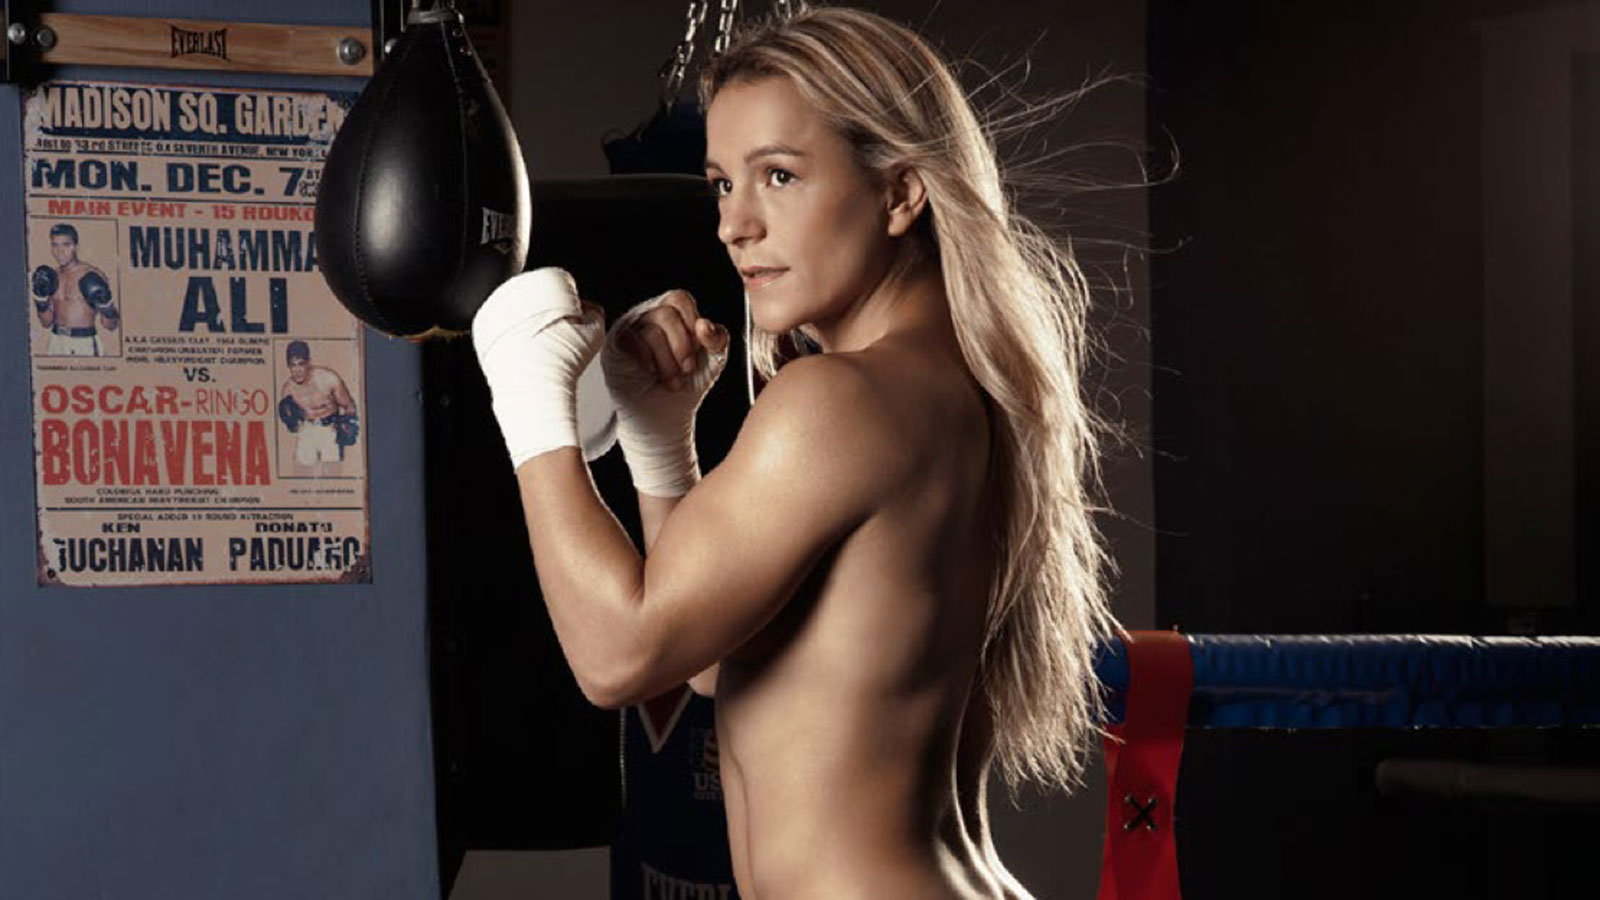 Have appeared nude women boxing consider, what